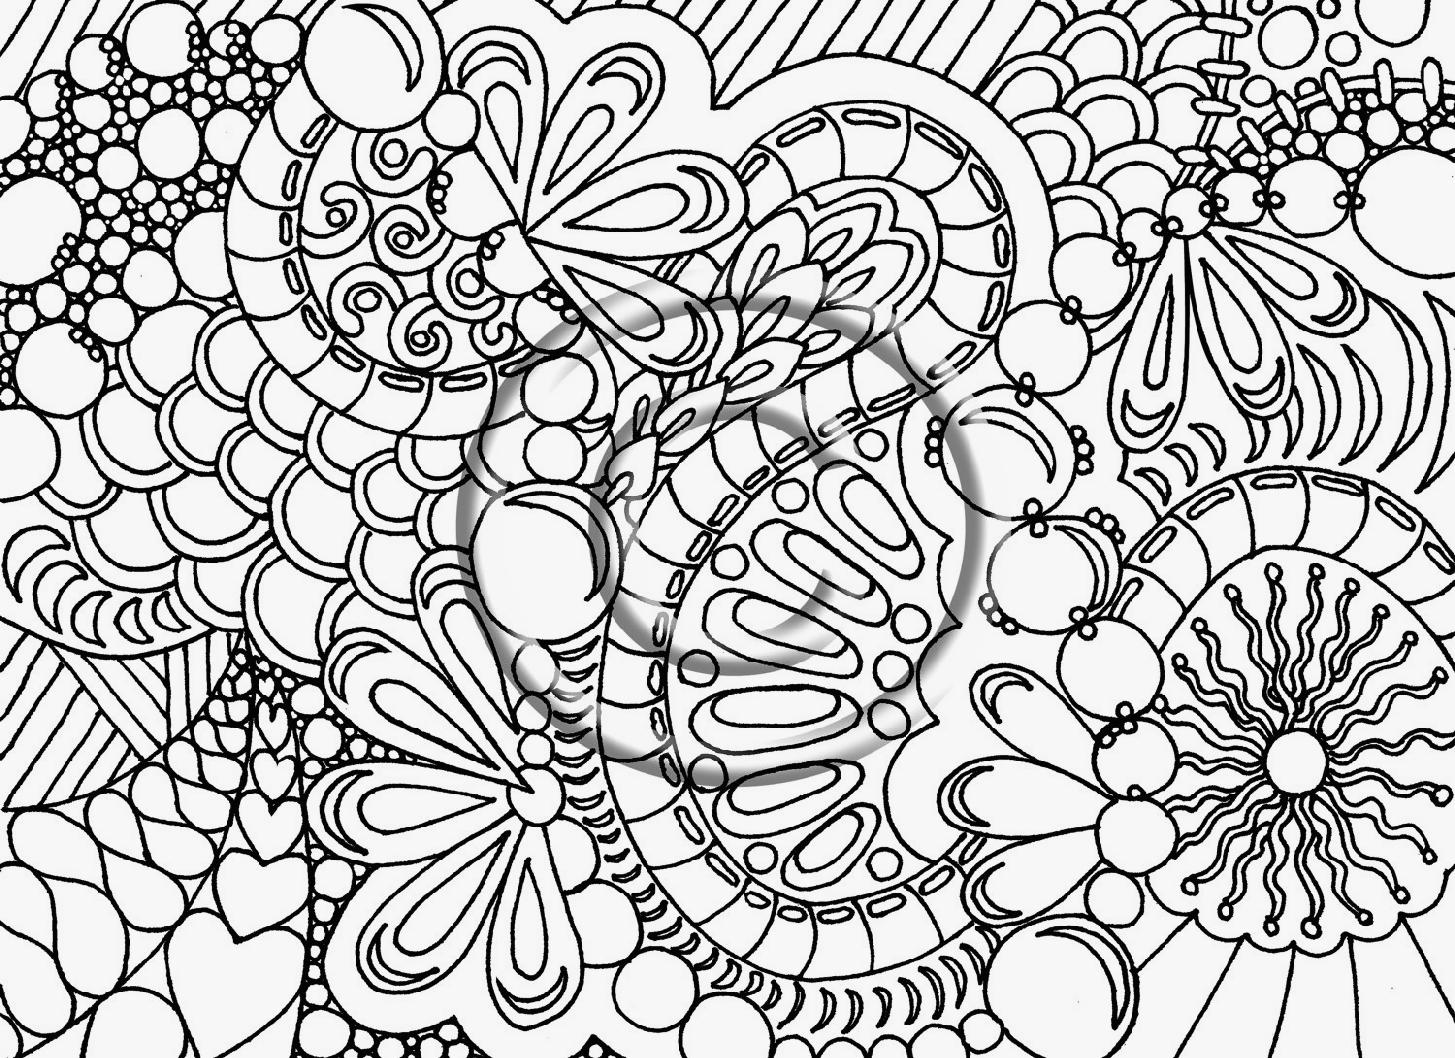 coloring free large print coloring pages for adults at getcoloringscom free coloring